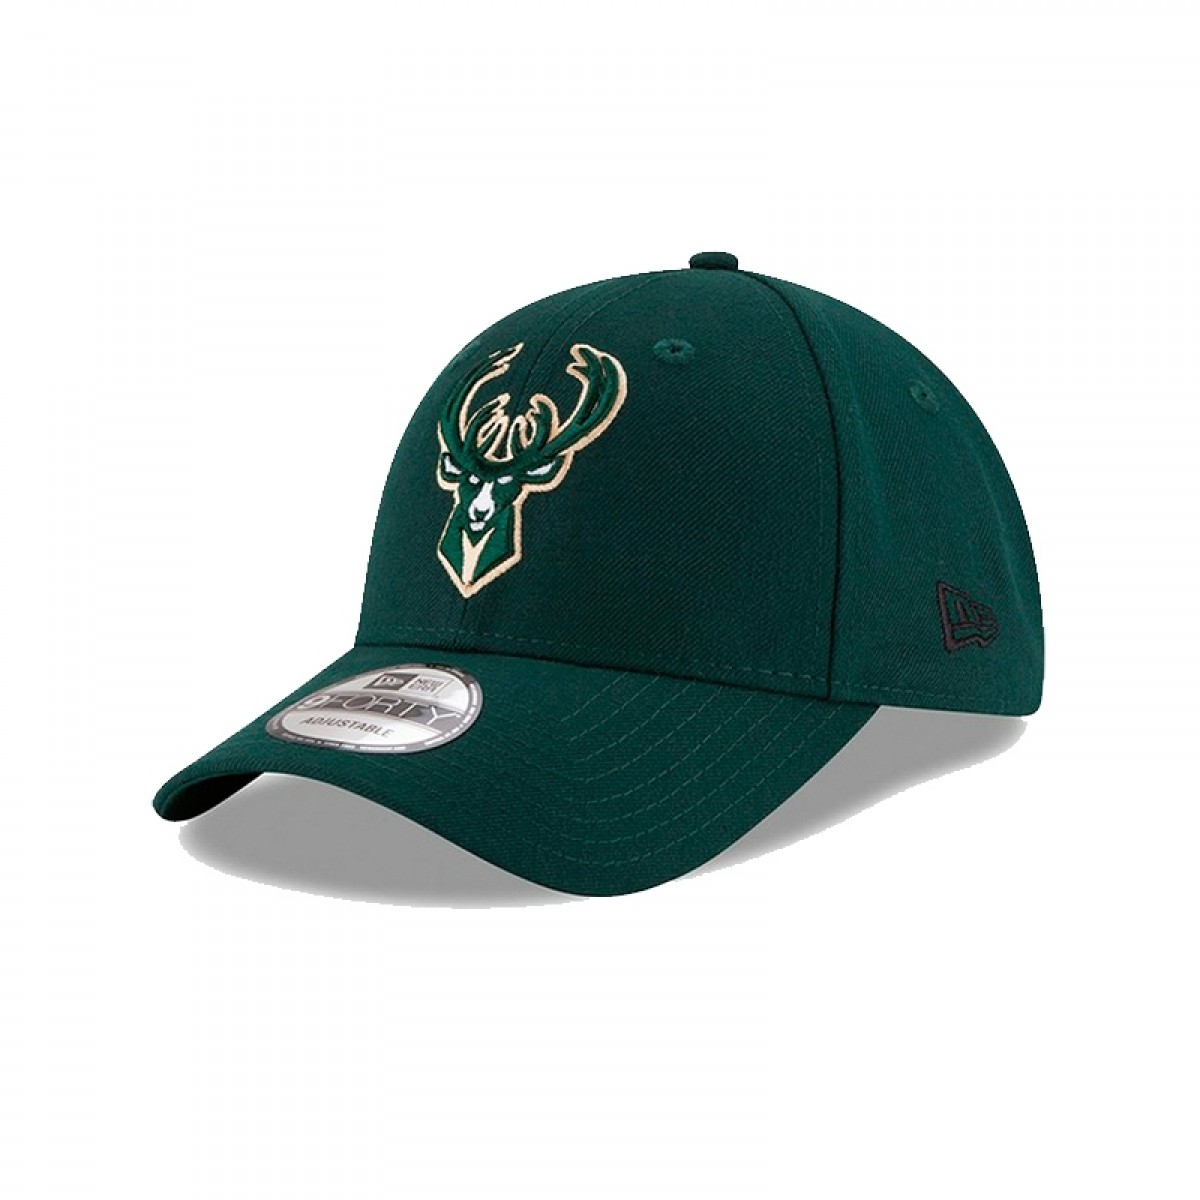 New Era 9Forty 'Bucks'-11405602